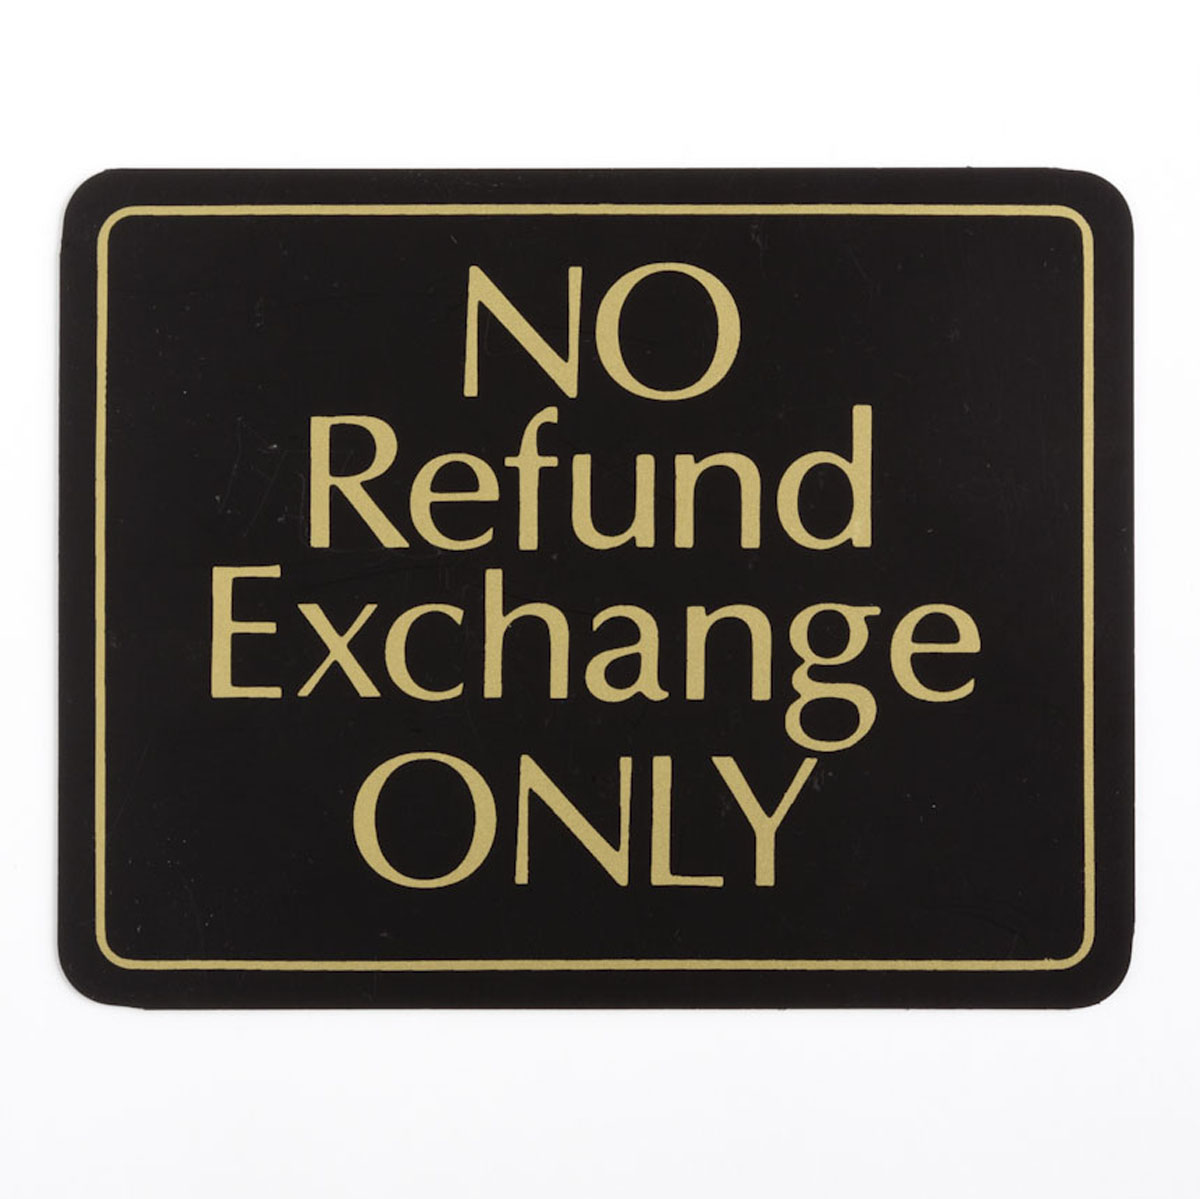 NO Refund Exchange ONLY Sign